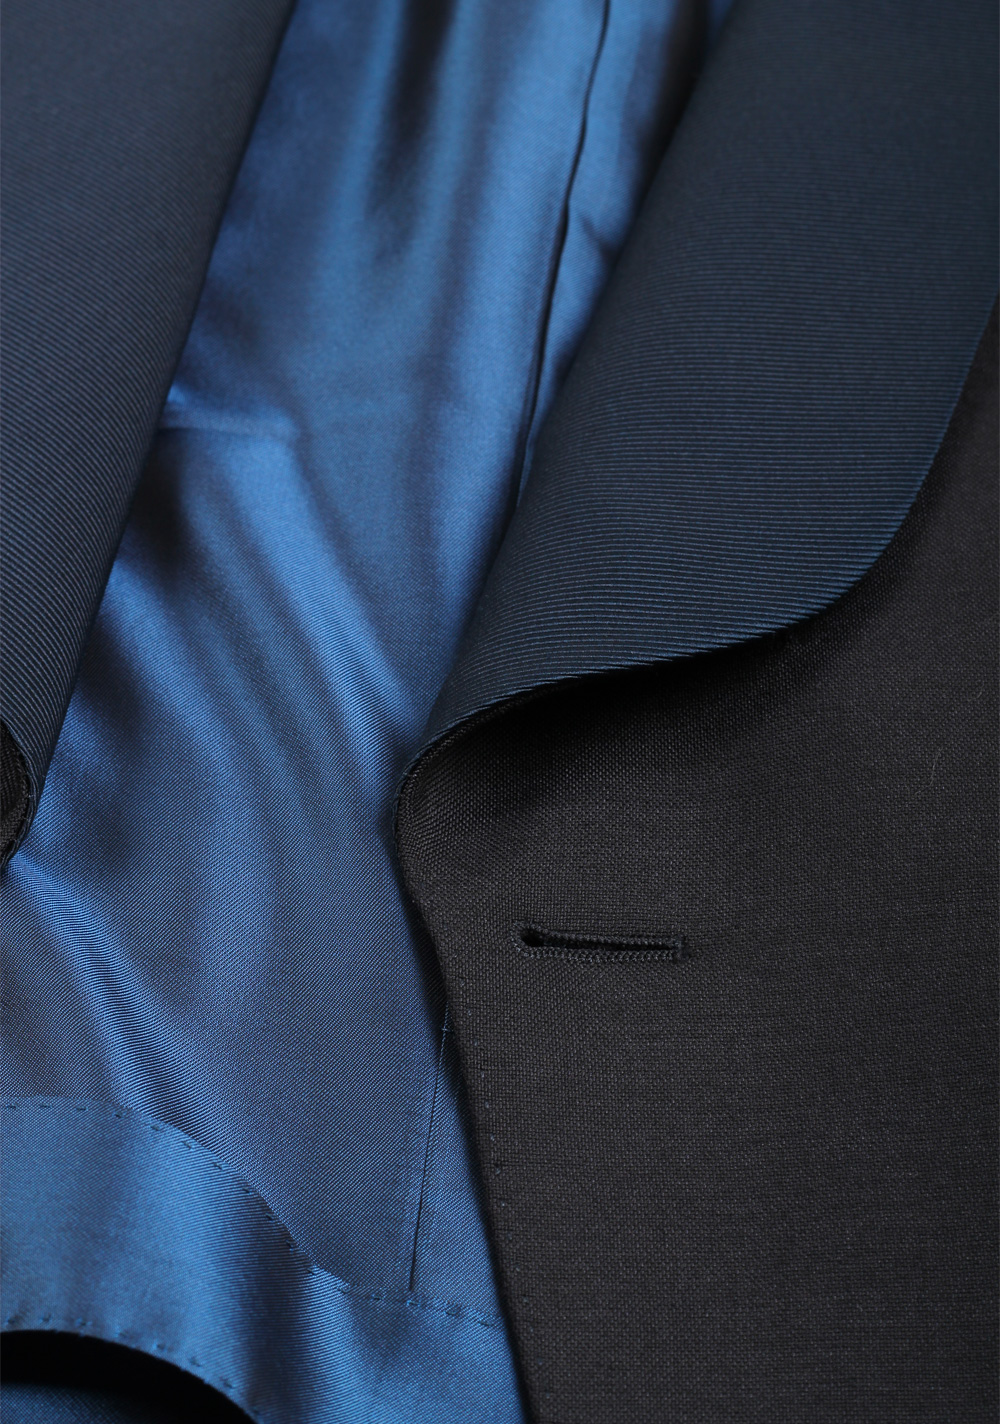 TOM FORD O'Connor Blue Tuxedo Suit Smoking Size 48C / 38S U.S. Fit Y In Mohair Cashmere   Costume Limité